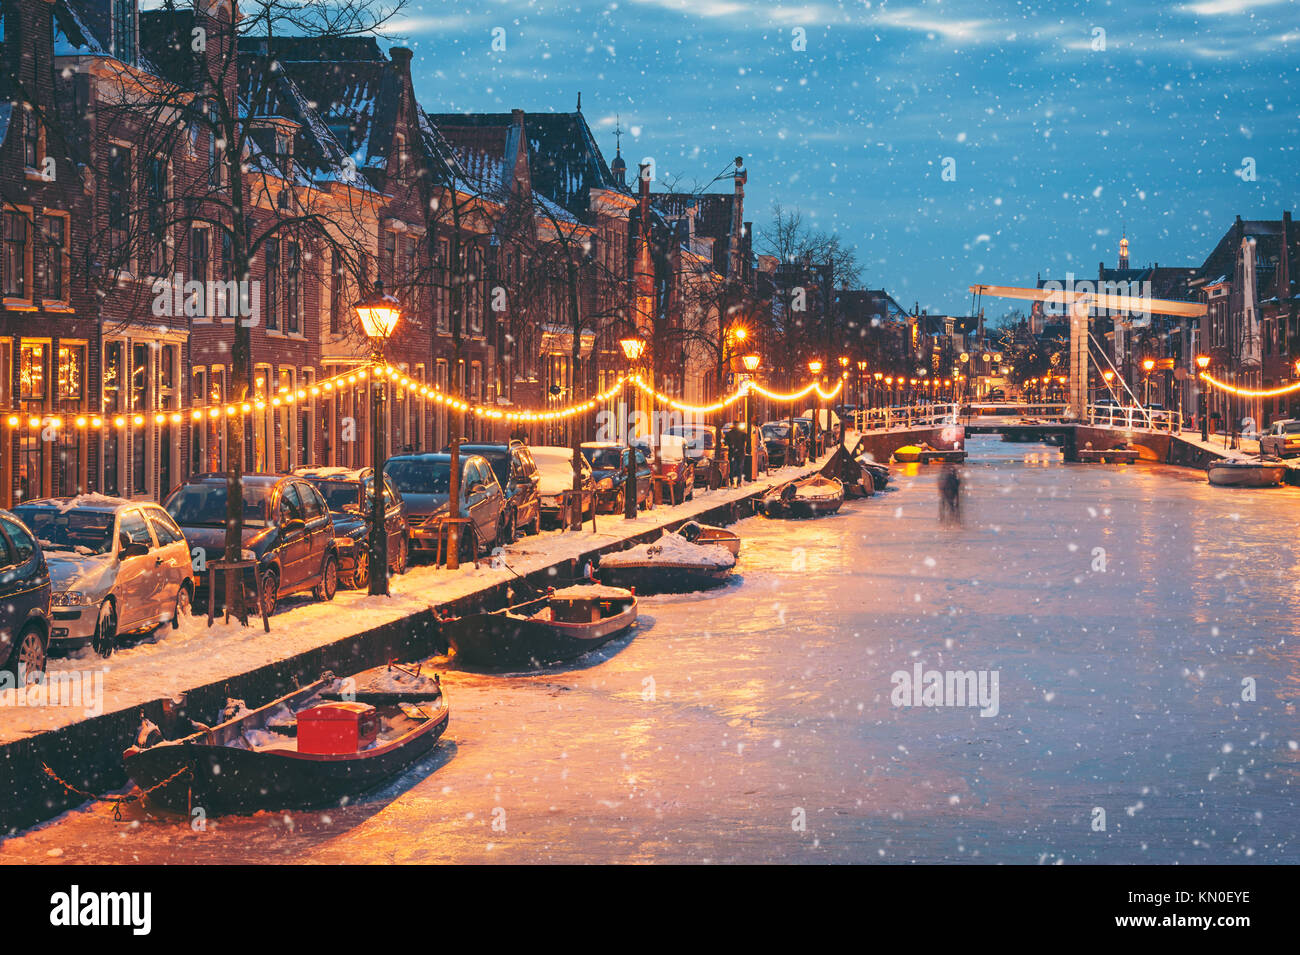 Winter scene in Alkmaar Netherlands with natural ice and falling snow - Stock Image